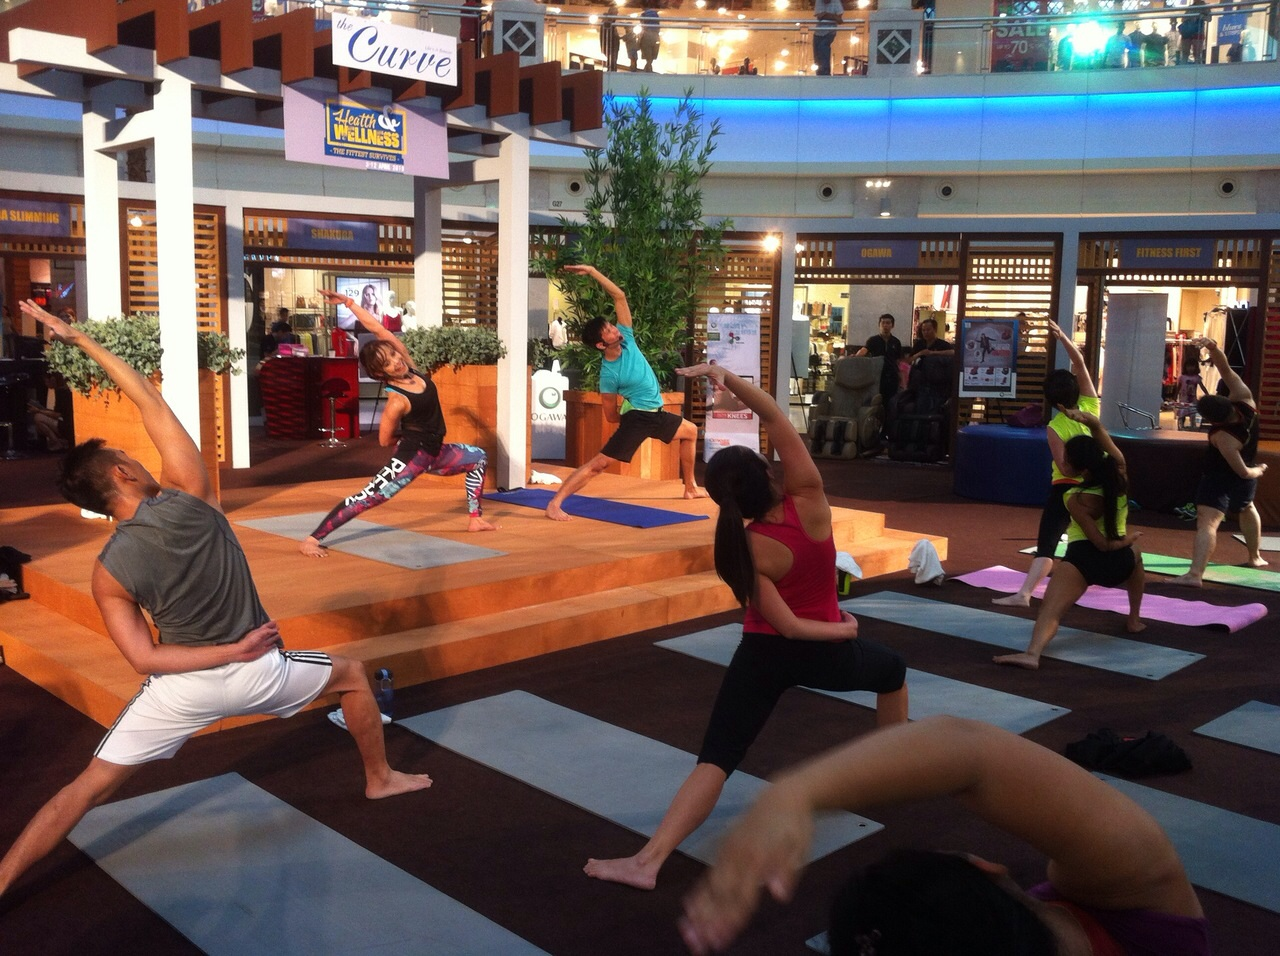 Fitness First instructors conducting a Body Balance class at the Curve's Centre Court.